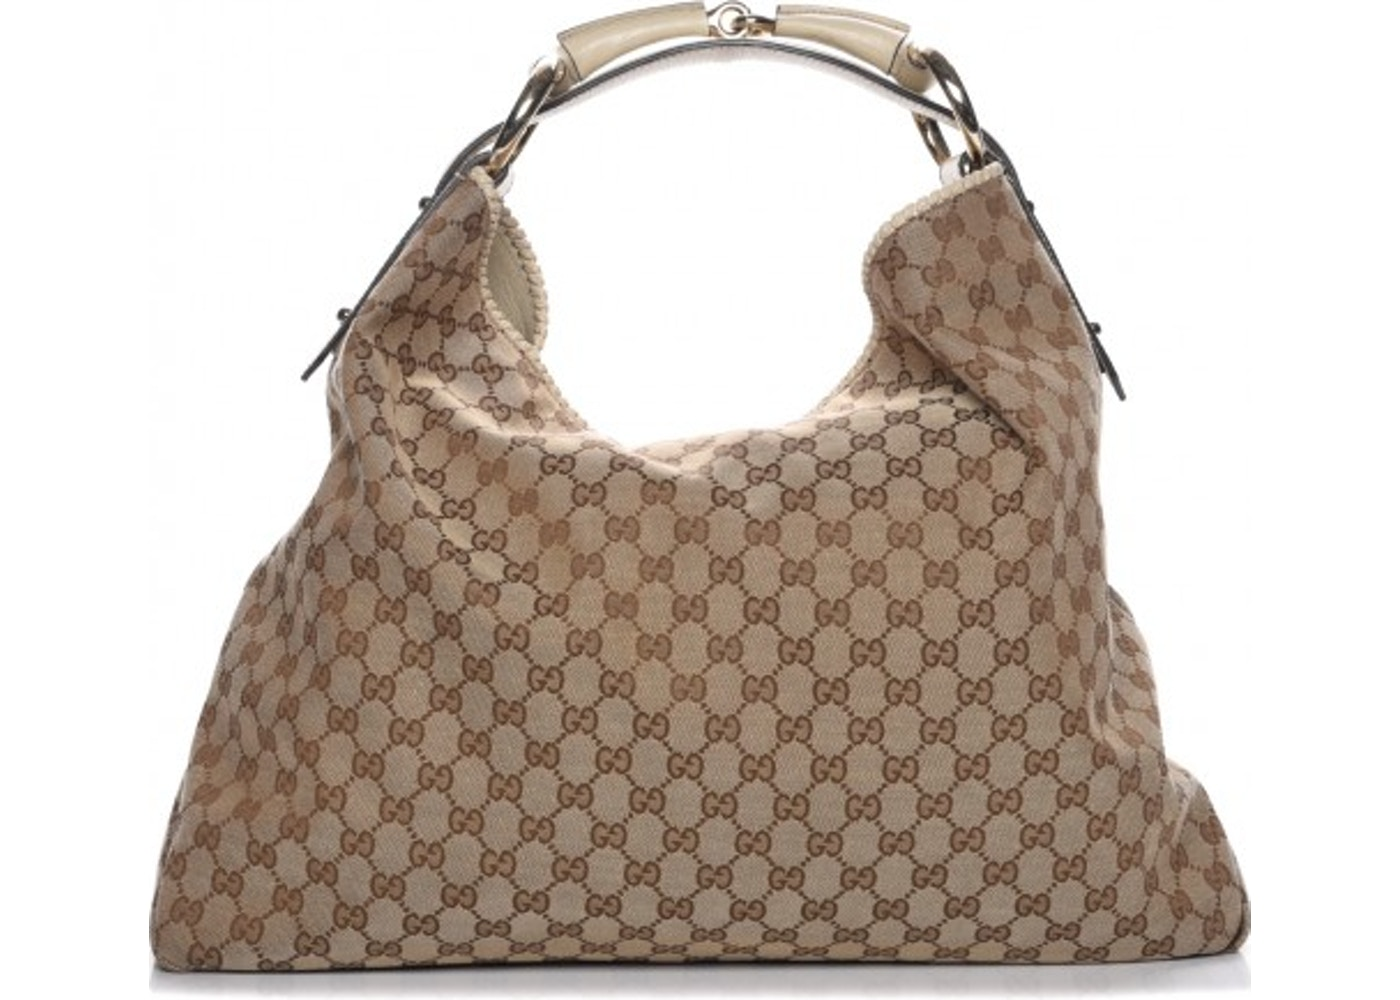 58f3892cea67ac Gucci Horsebit Hobo Monogram GG Large Brown/Beige. Monogram GG Large  Brown/Beige